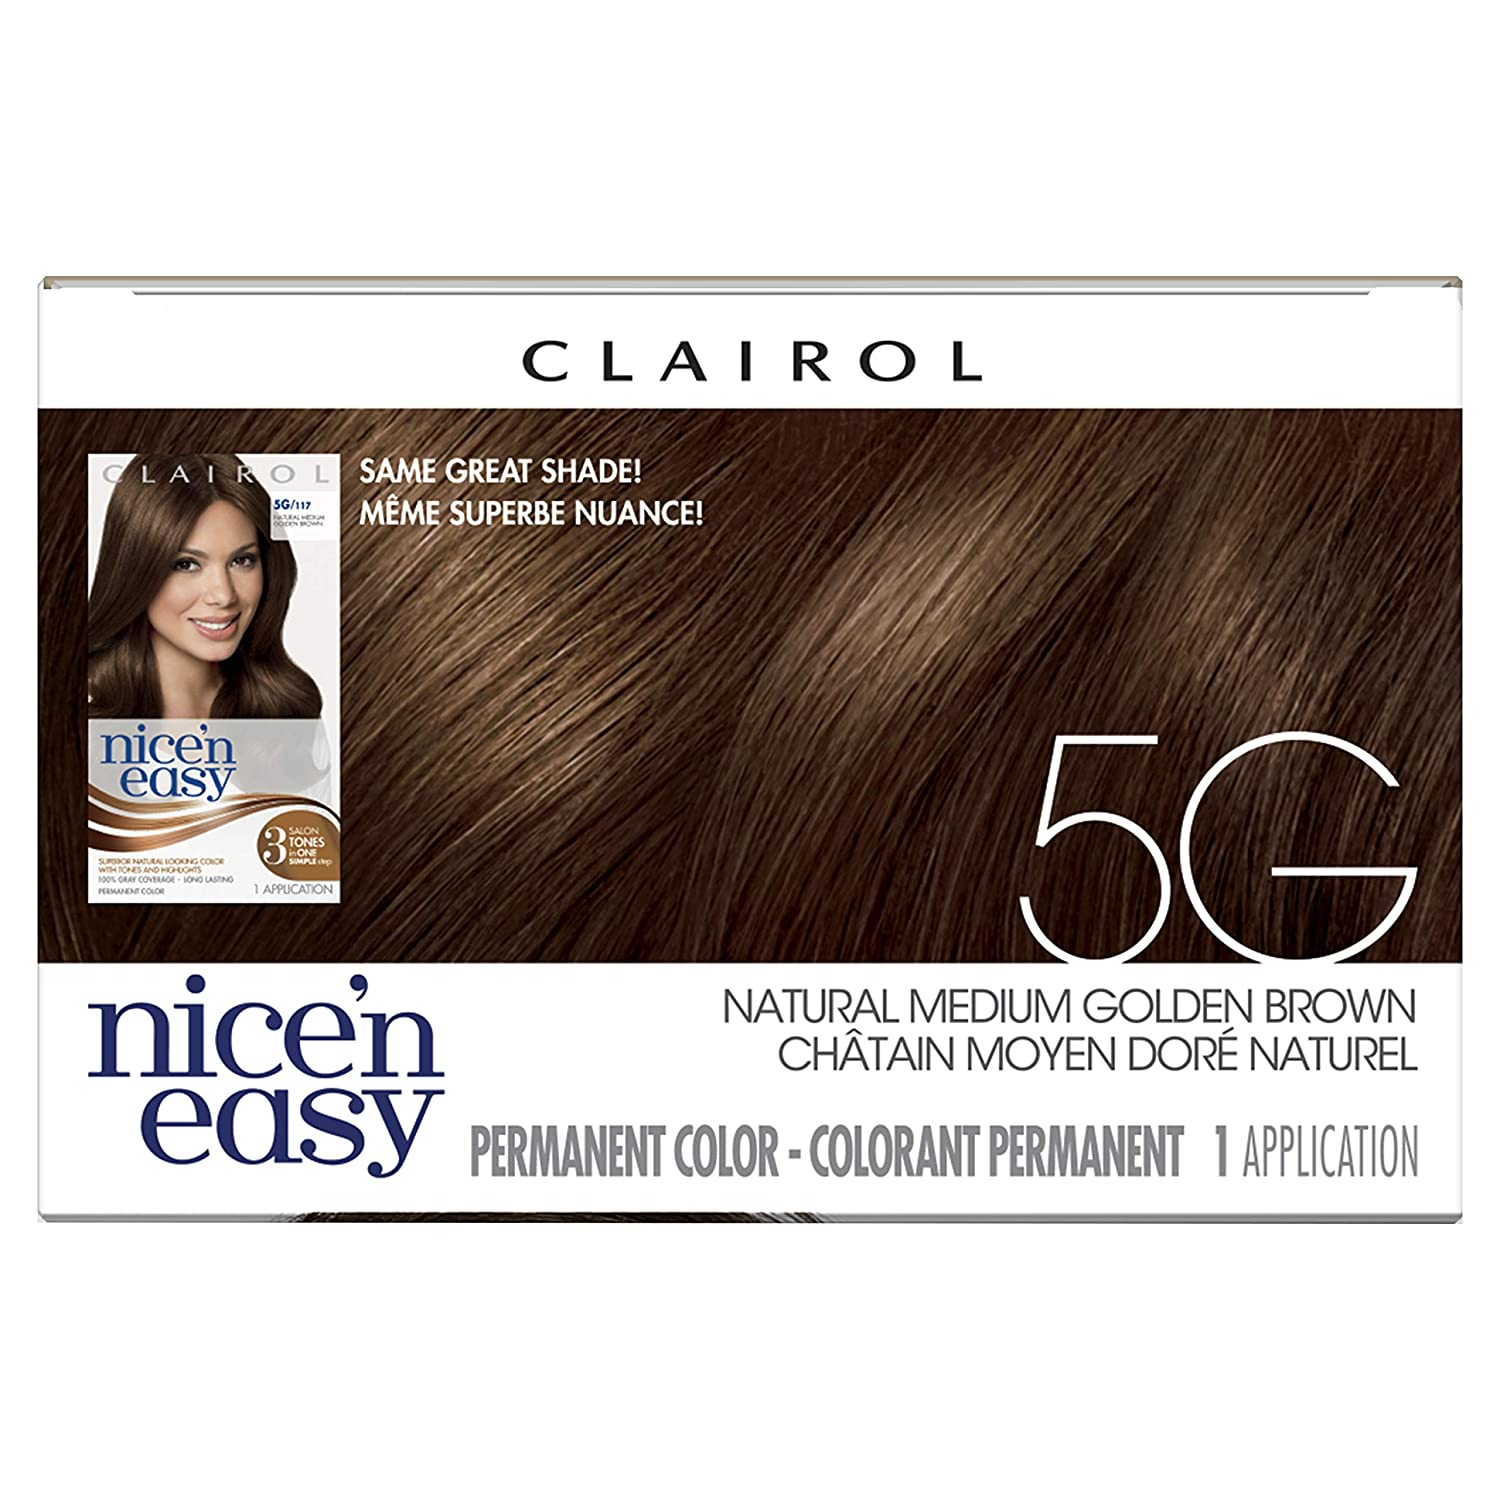 Clairol Nice'n Easy Original Permanent Hair Color, 5G Medium Golden Brown, 3 Count : Chemical Hair Dyes : Beauty